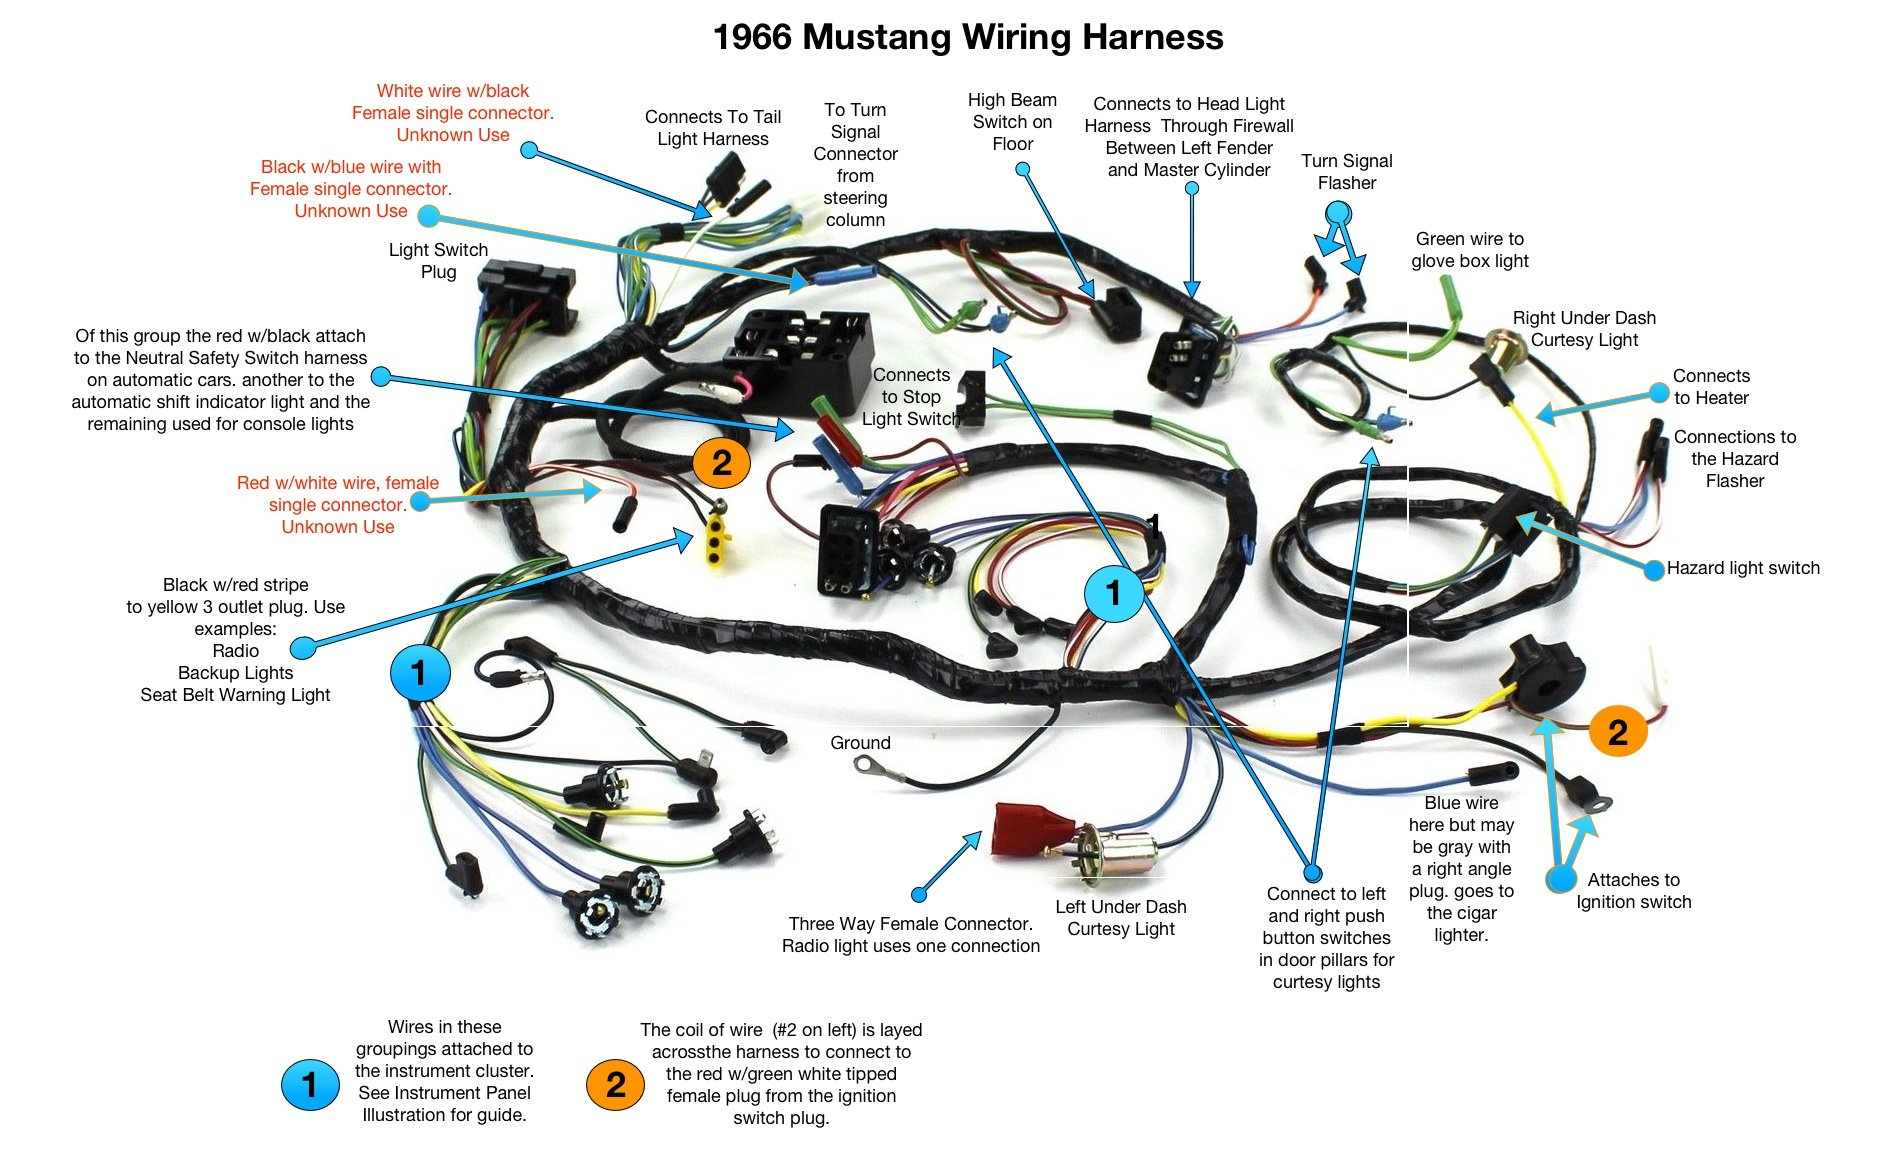 507585d1458686767 66 wiring harness diagram 66 mustang wiring harness 1966 mustang wiring harness on 1966 download wirning diagrams 1966 mustang wiring harness kit at n-0.co